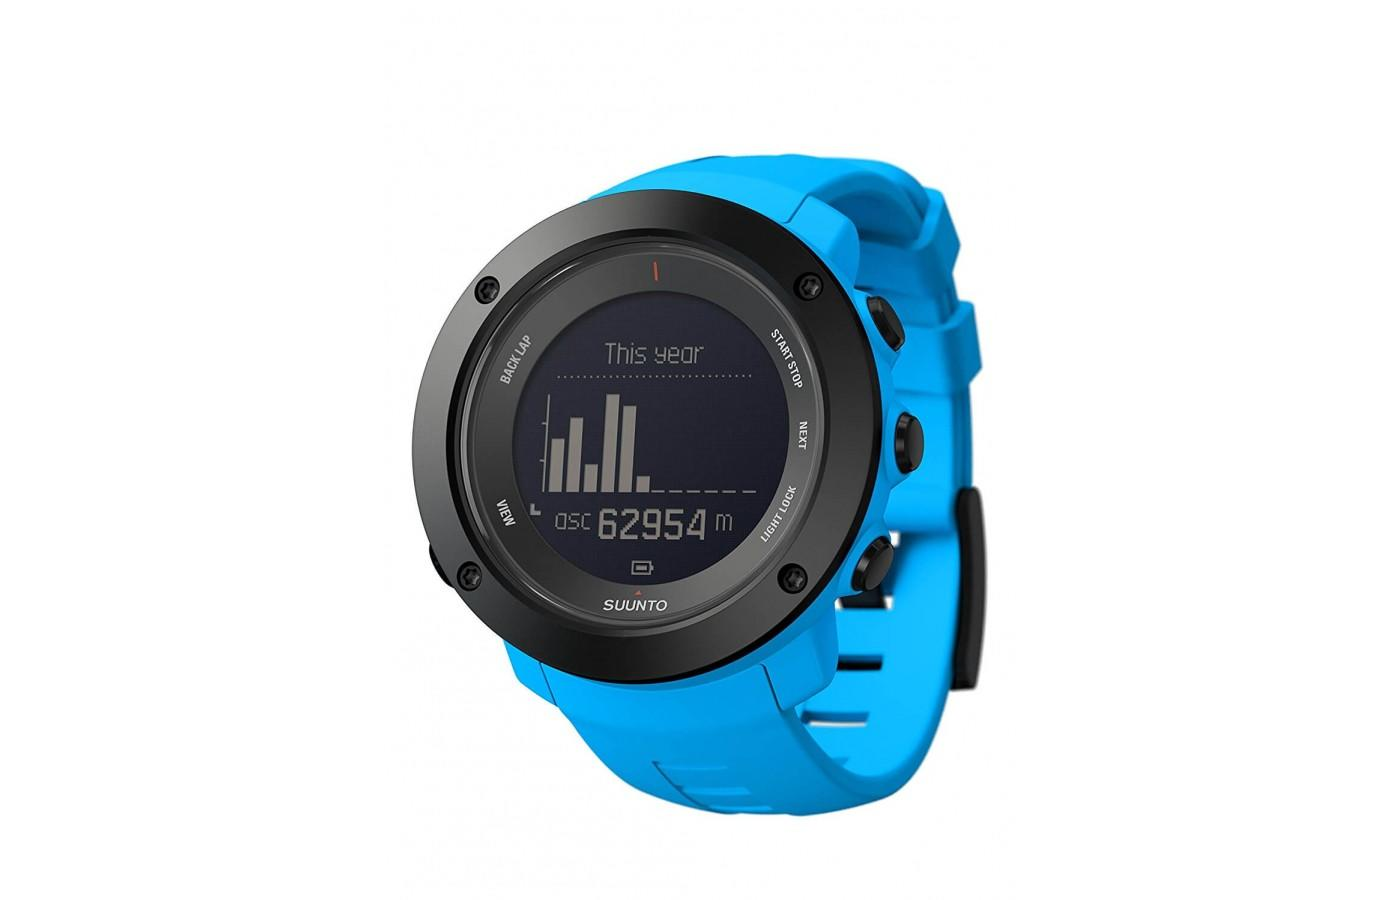 The Suunto Ambit 3 peak also comes in this bright blue